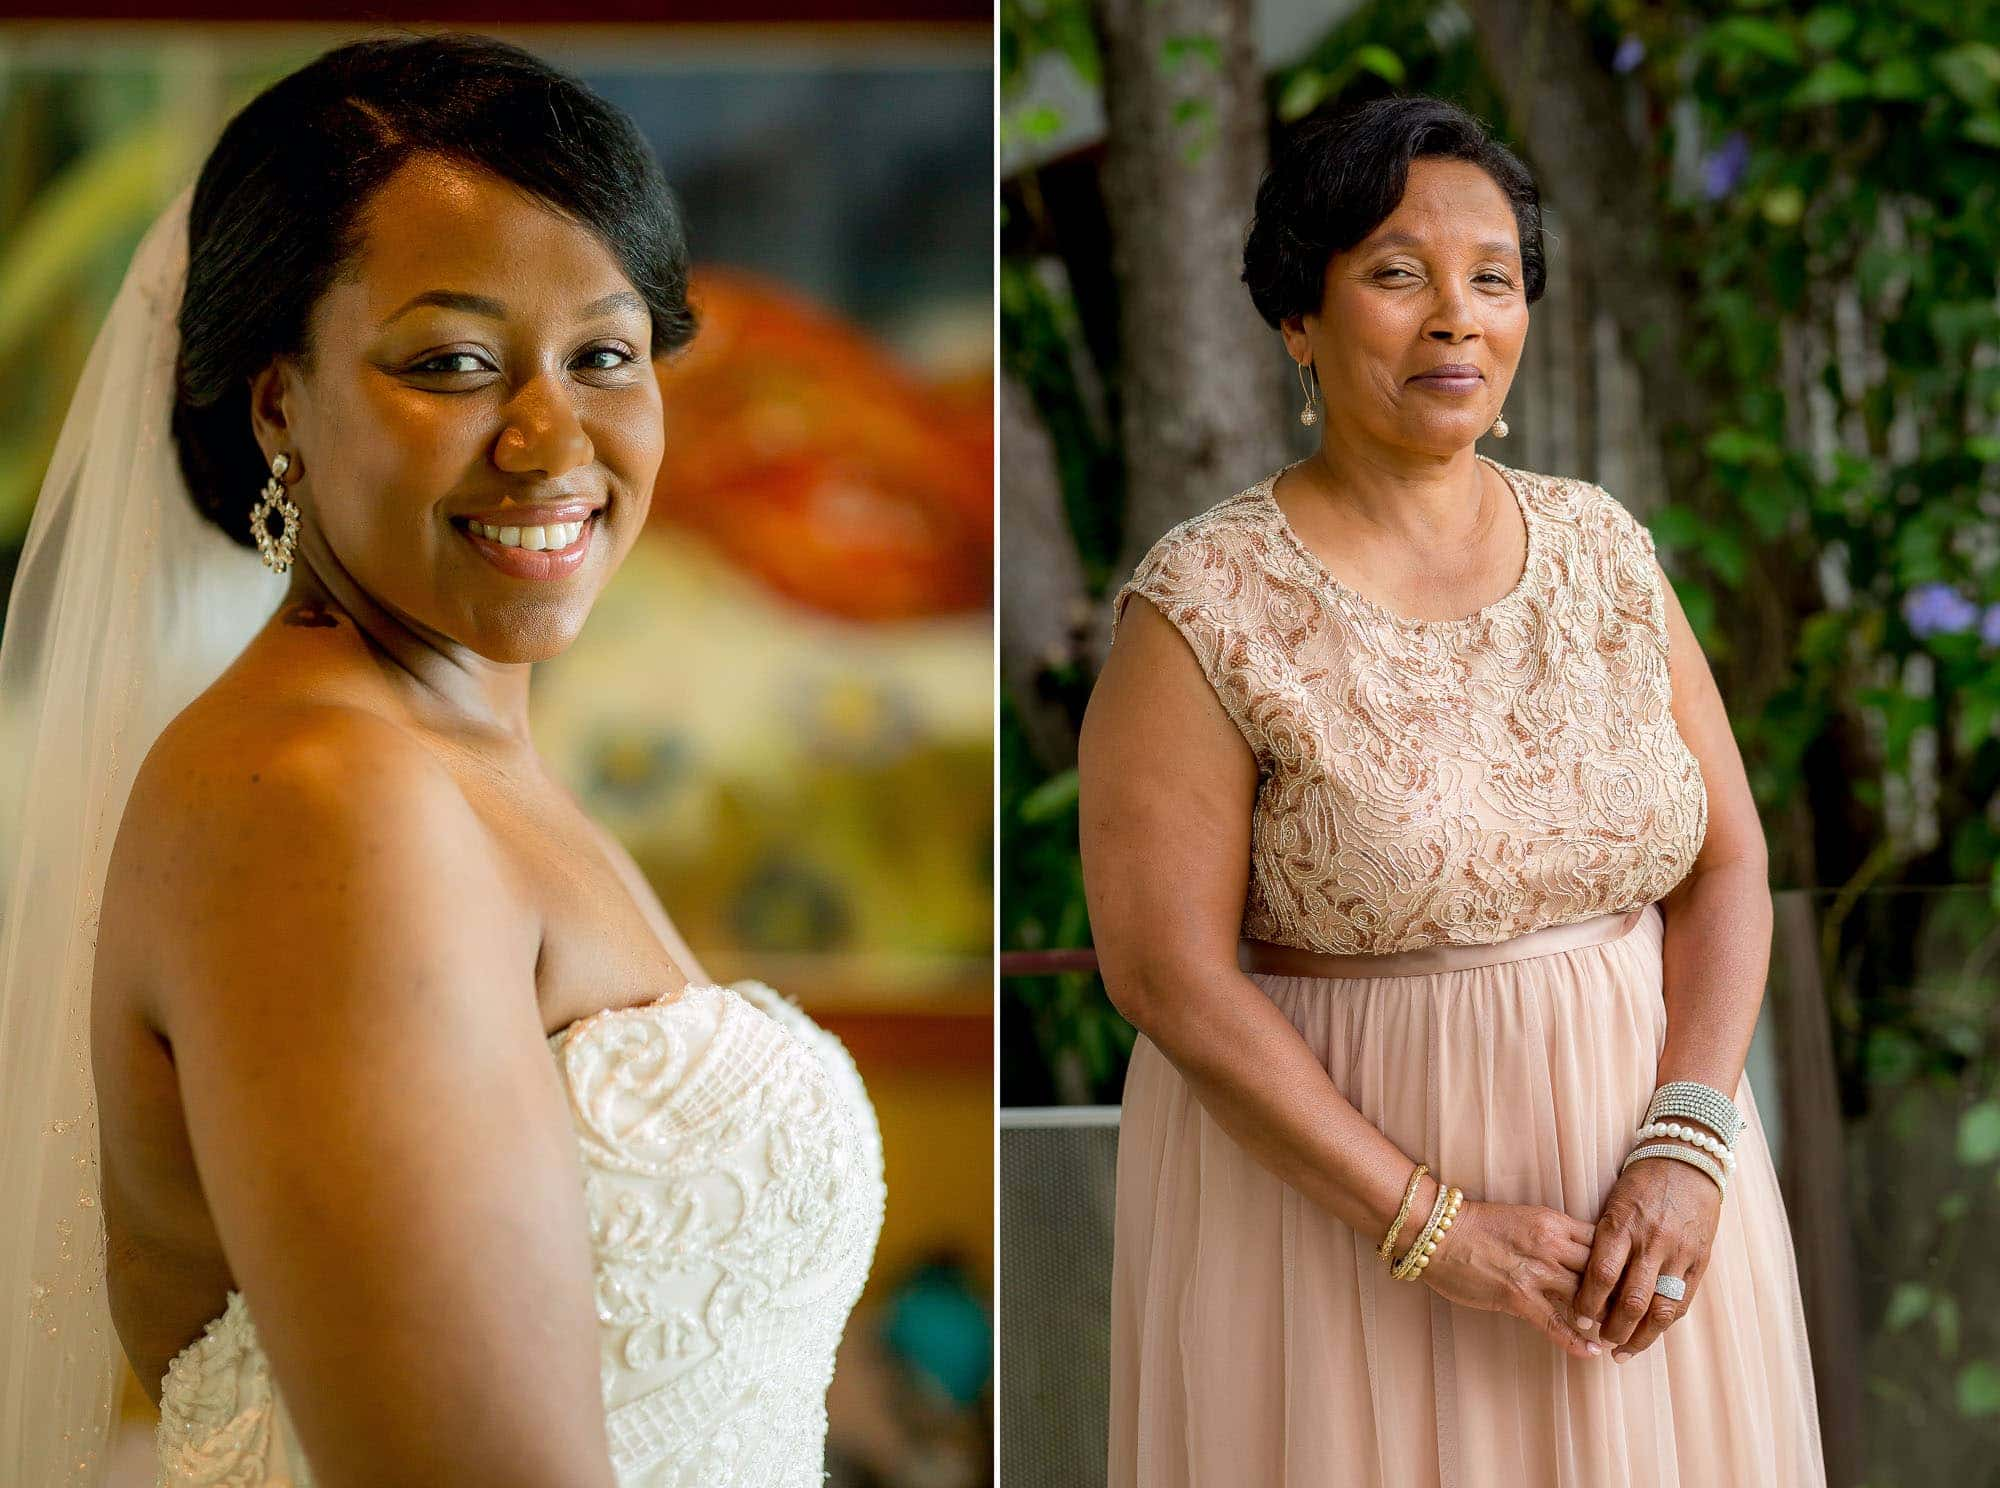 Portraits of the bride and her mom